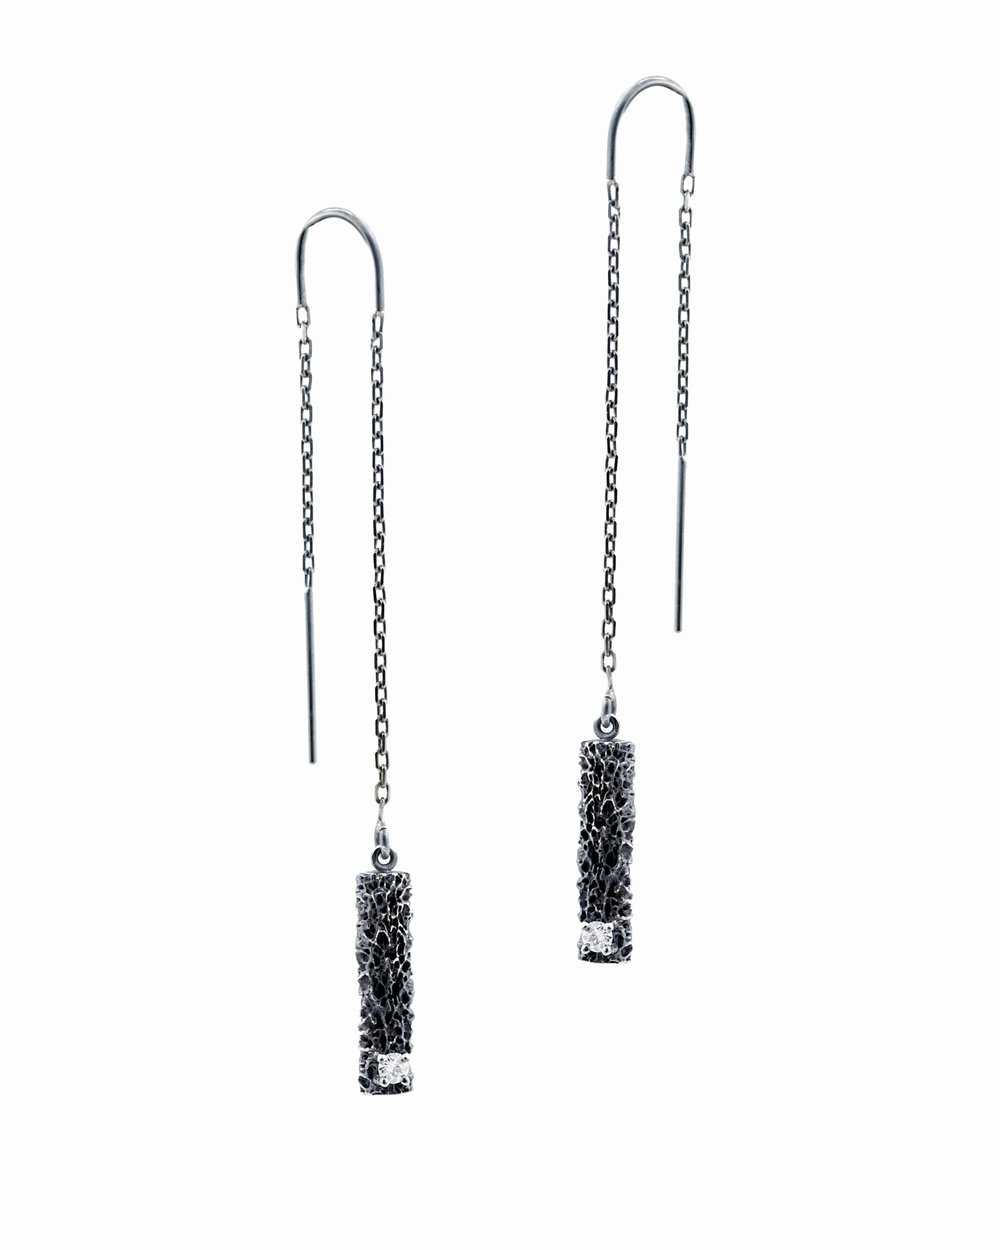 Threaded column earrings: Sterling silver, white diamonds.